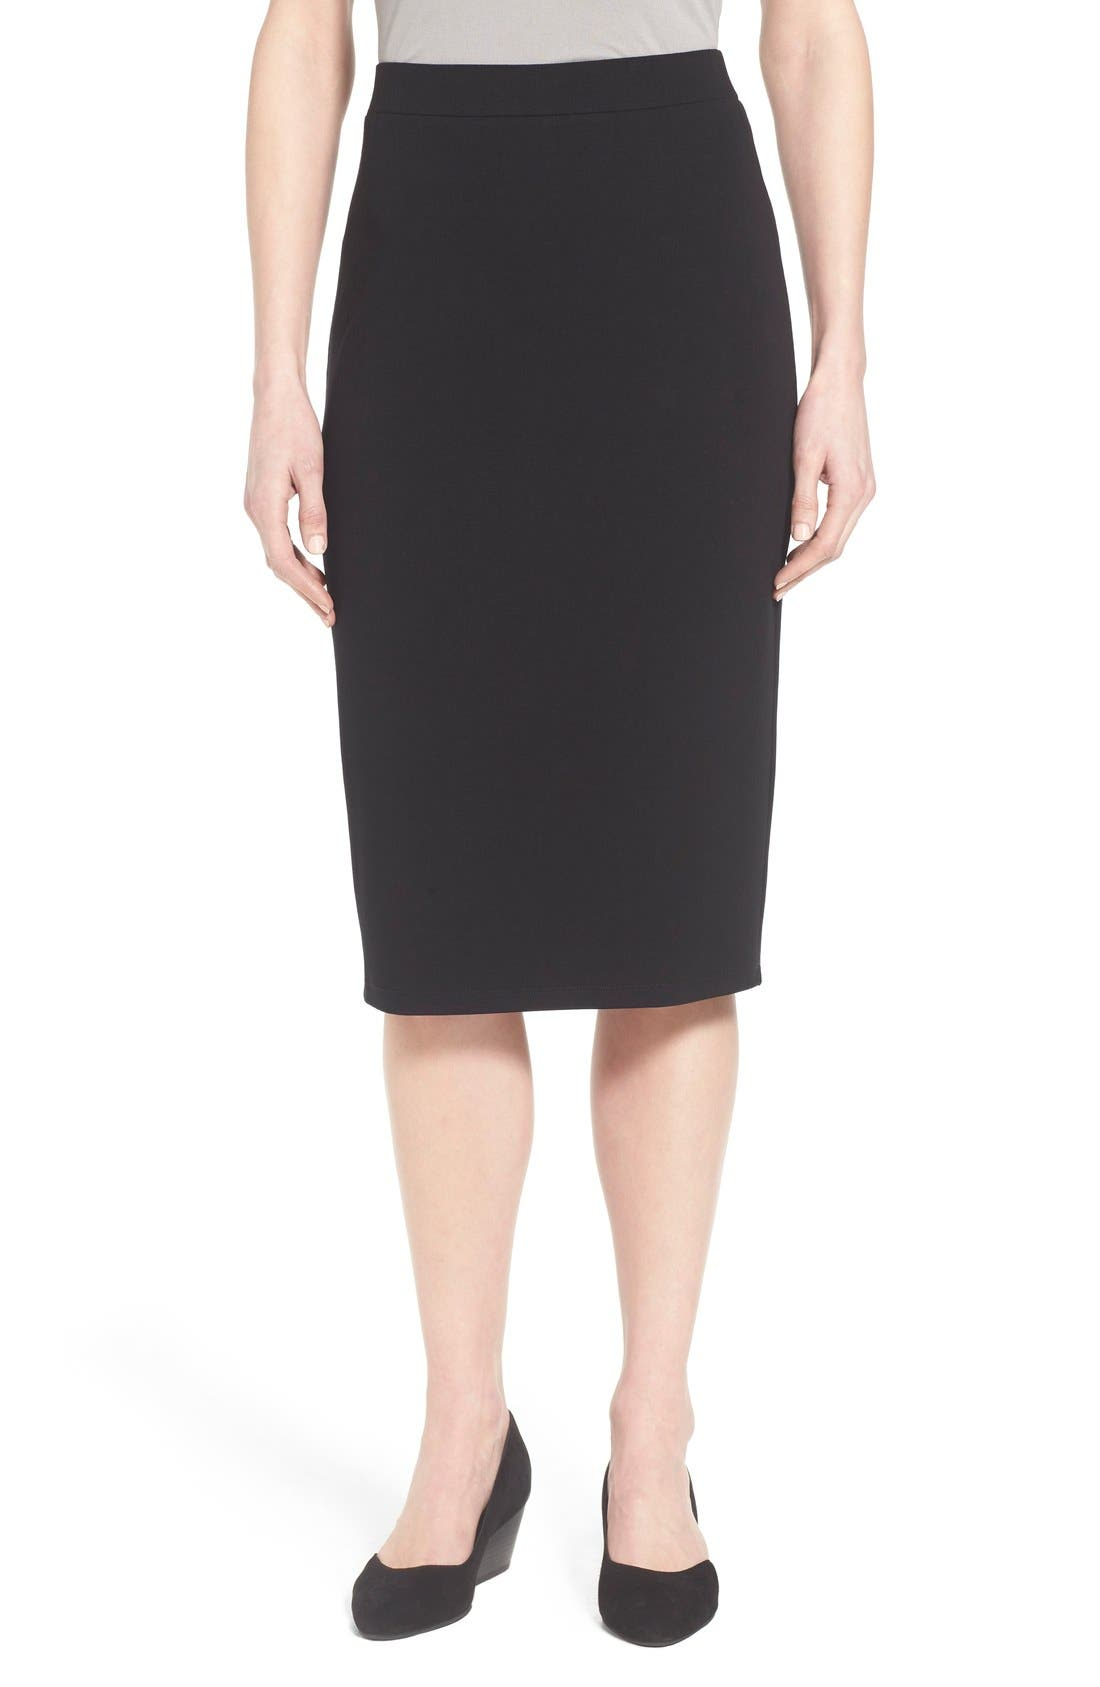 Eileen Fisher Calf Length Pencil Skirt (Regular & Petite)